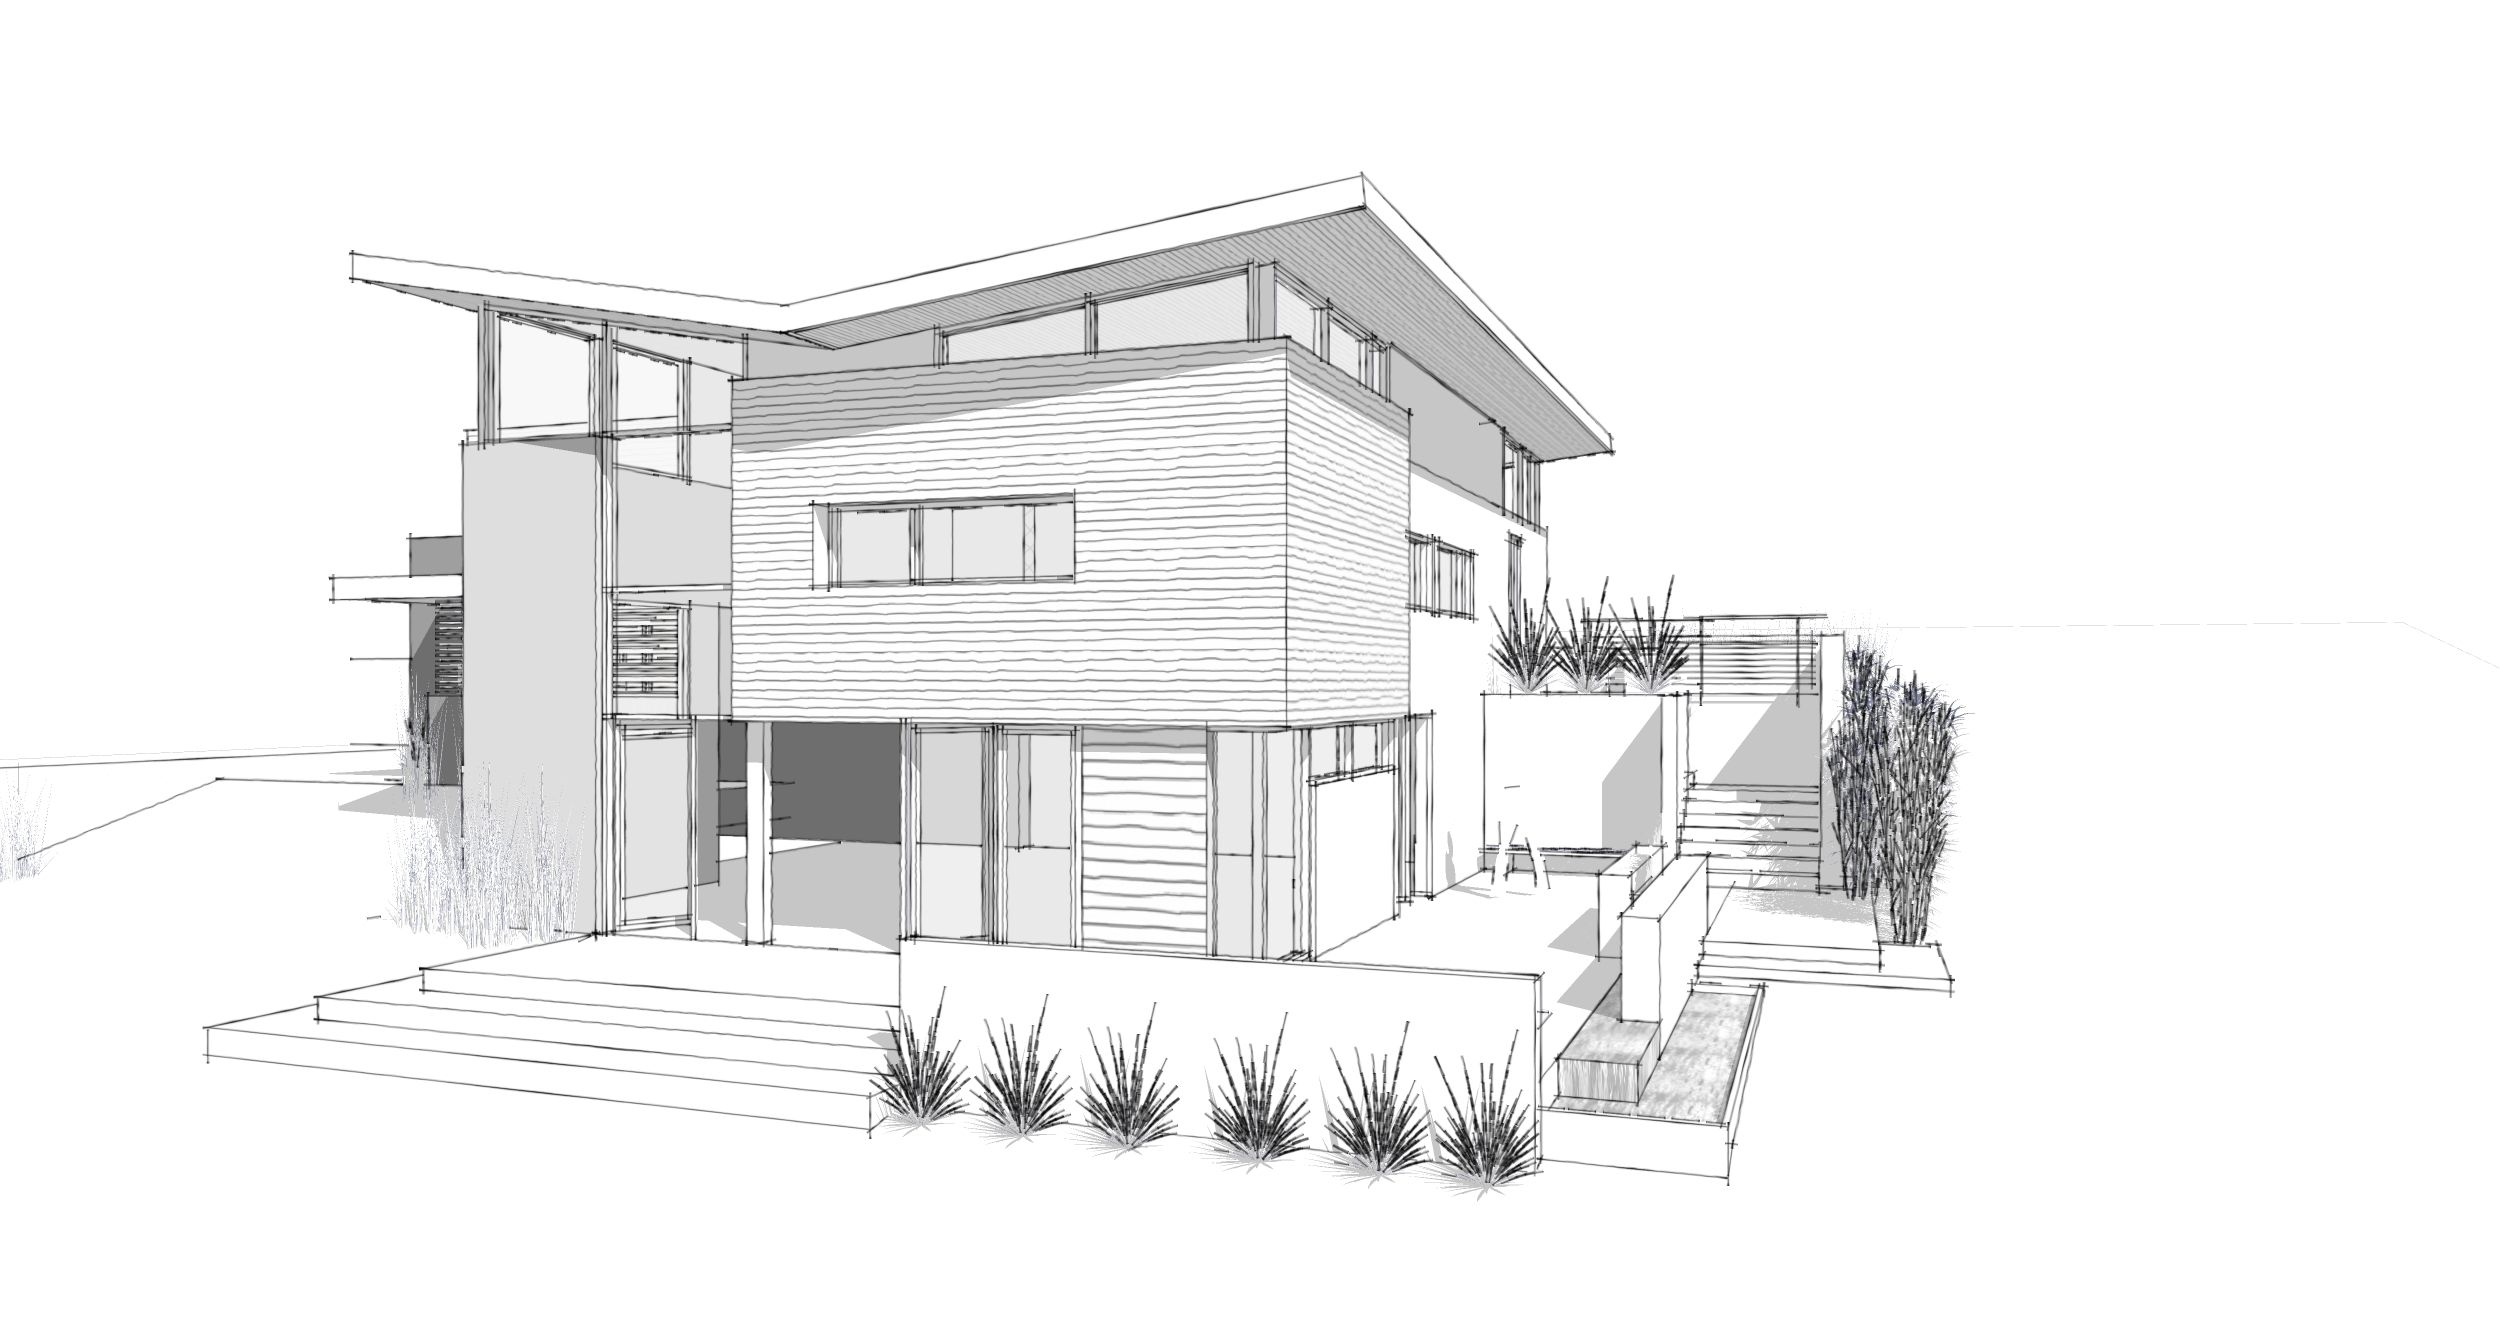 Modern home architecture sketches design ideas 13435 architecture design